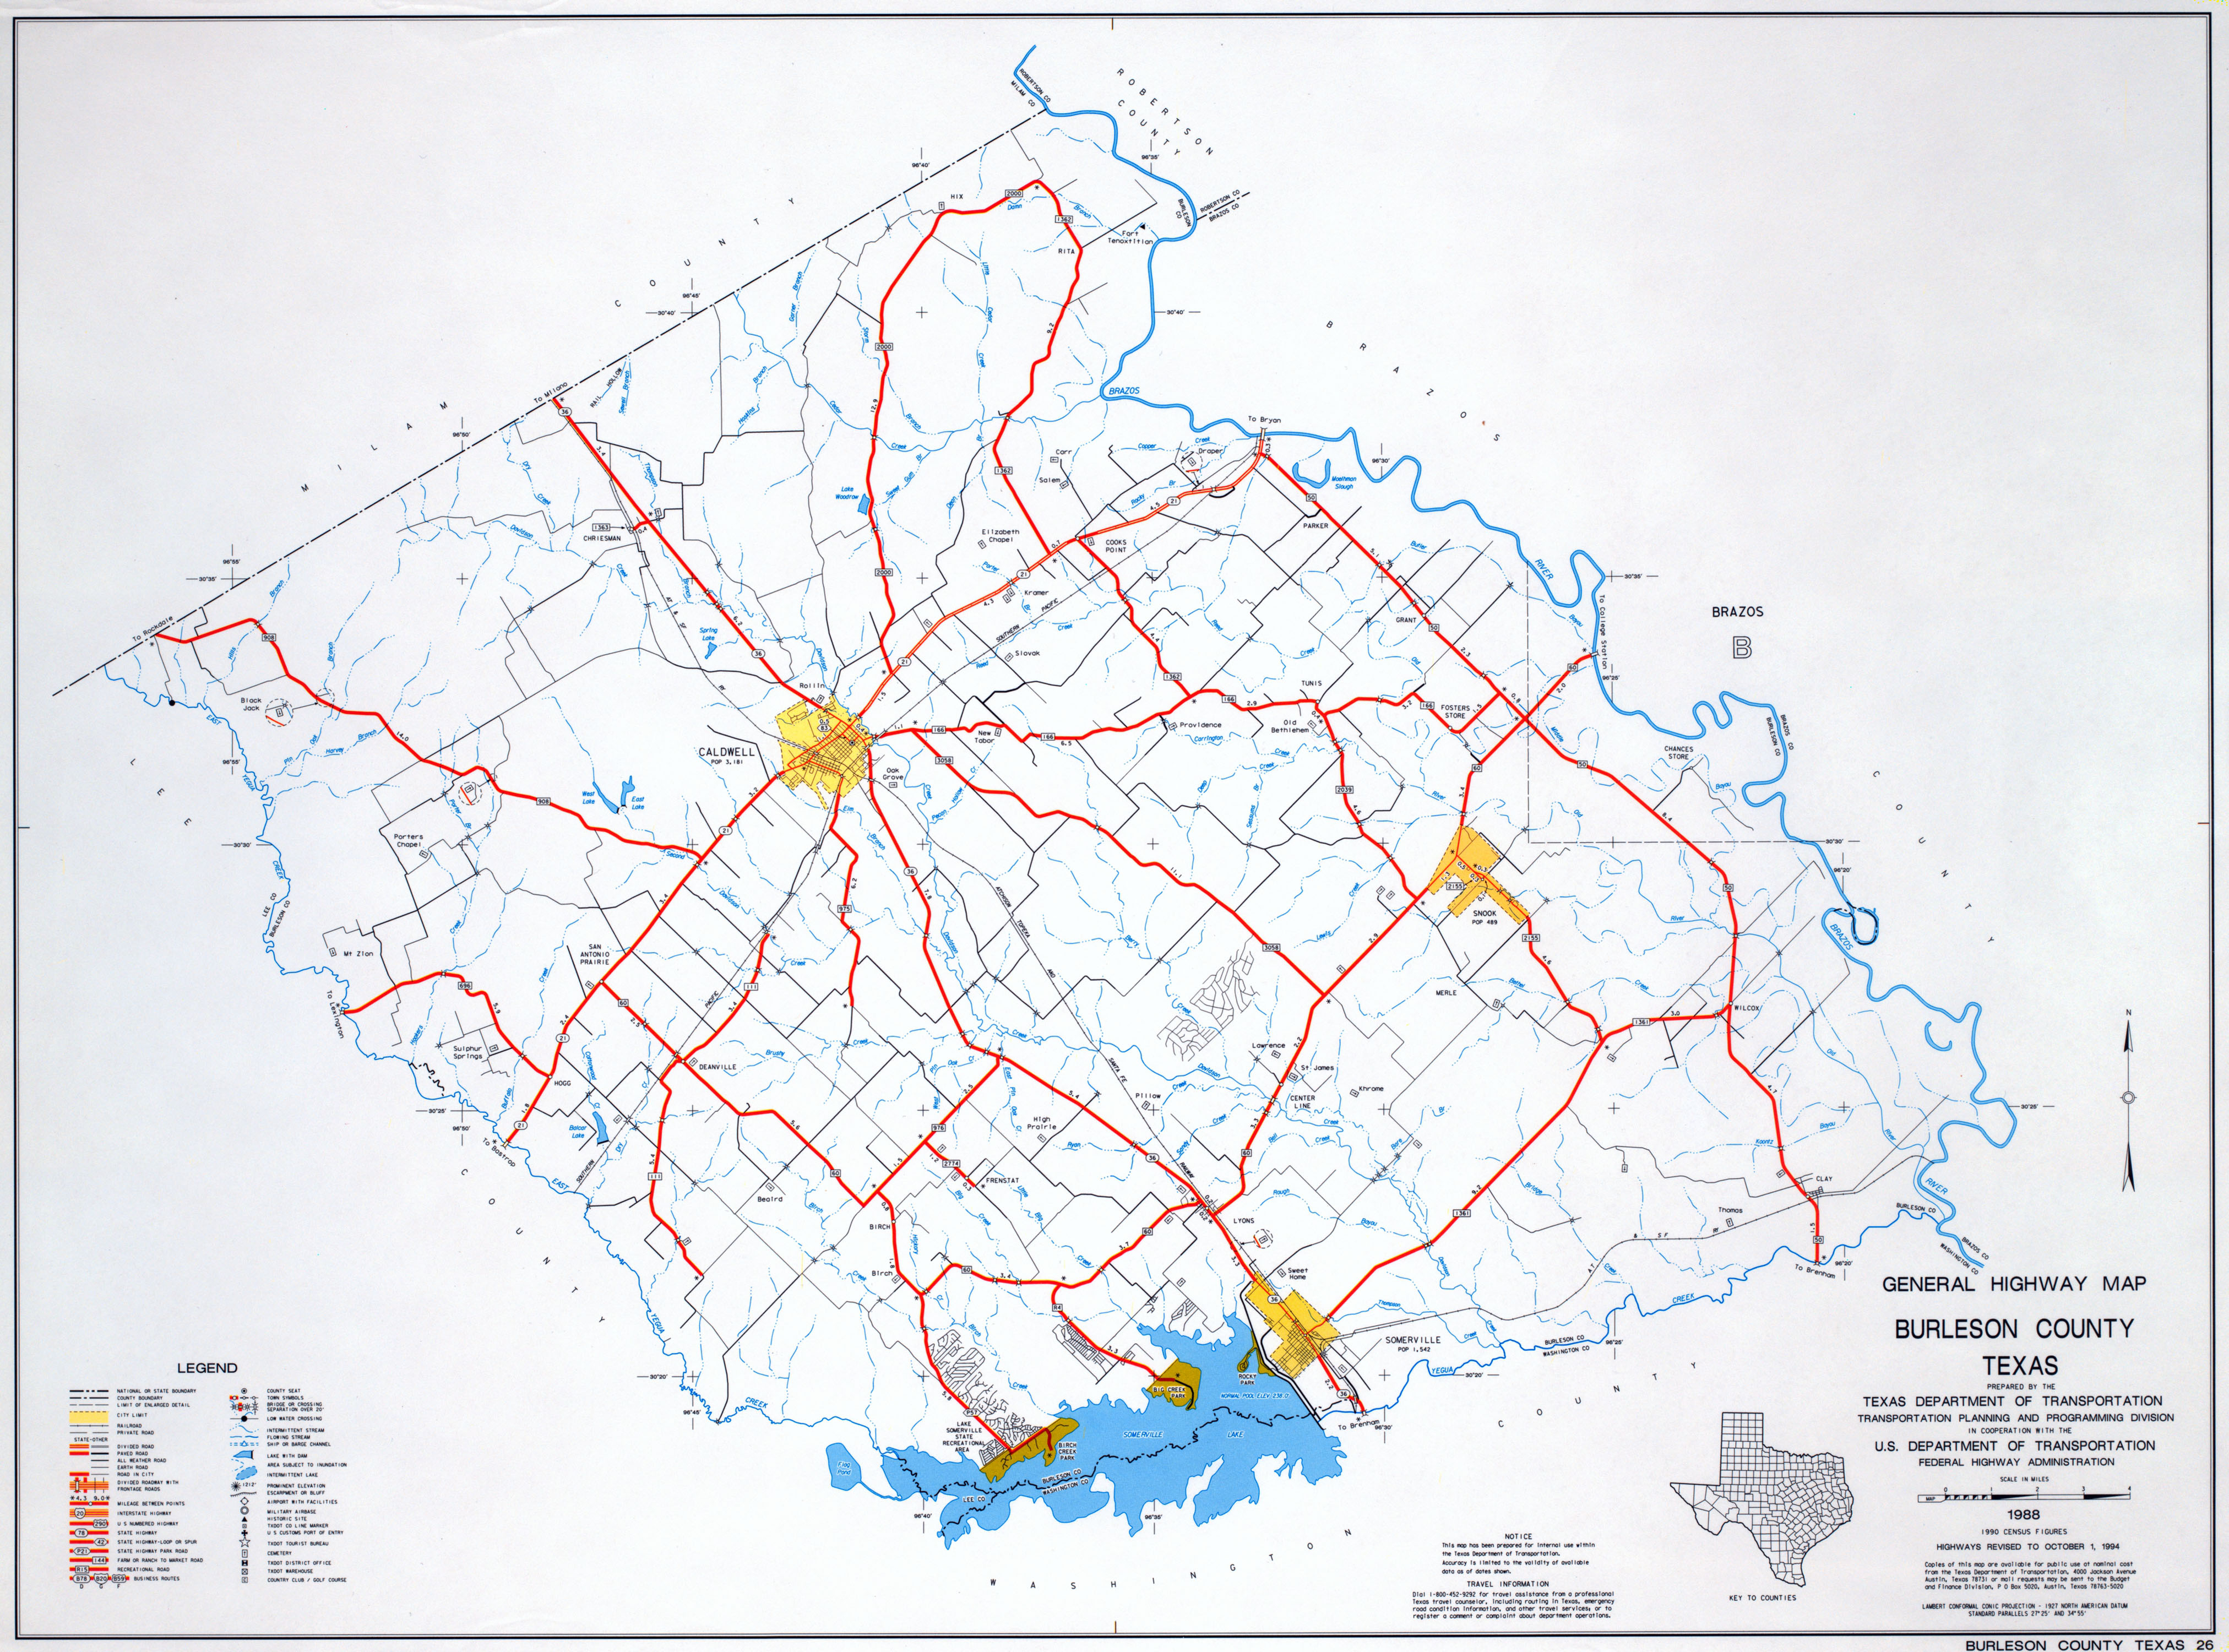 Texas County Highway Maps Browse - Perry-Castañeda Map Collection - Brazos County Texas Map